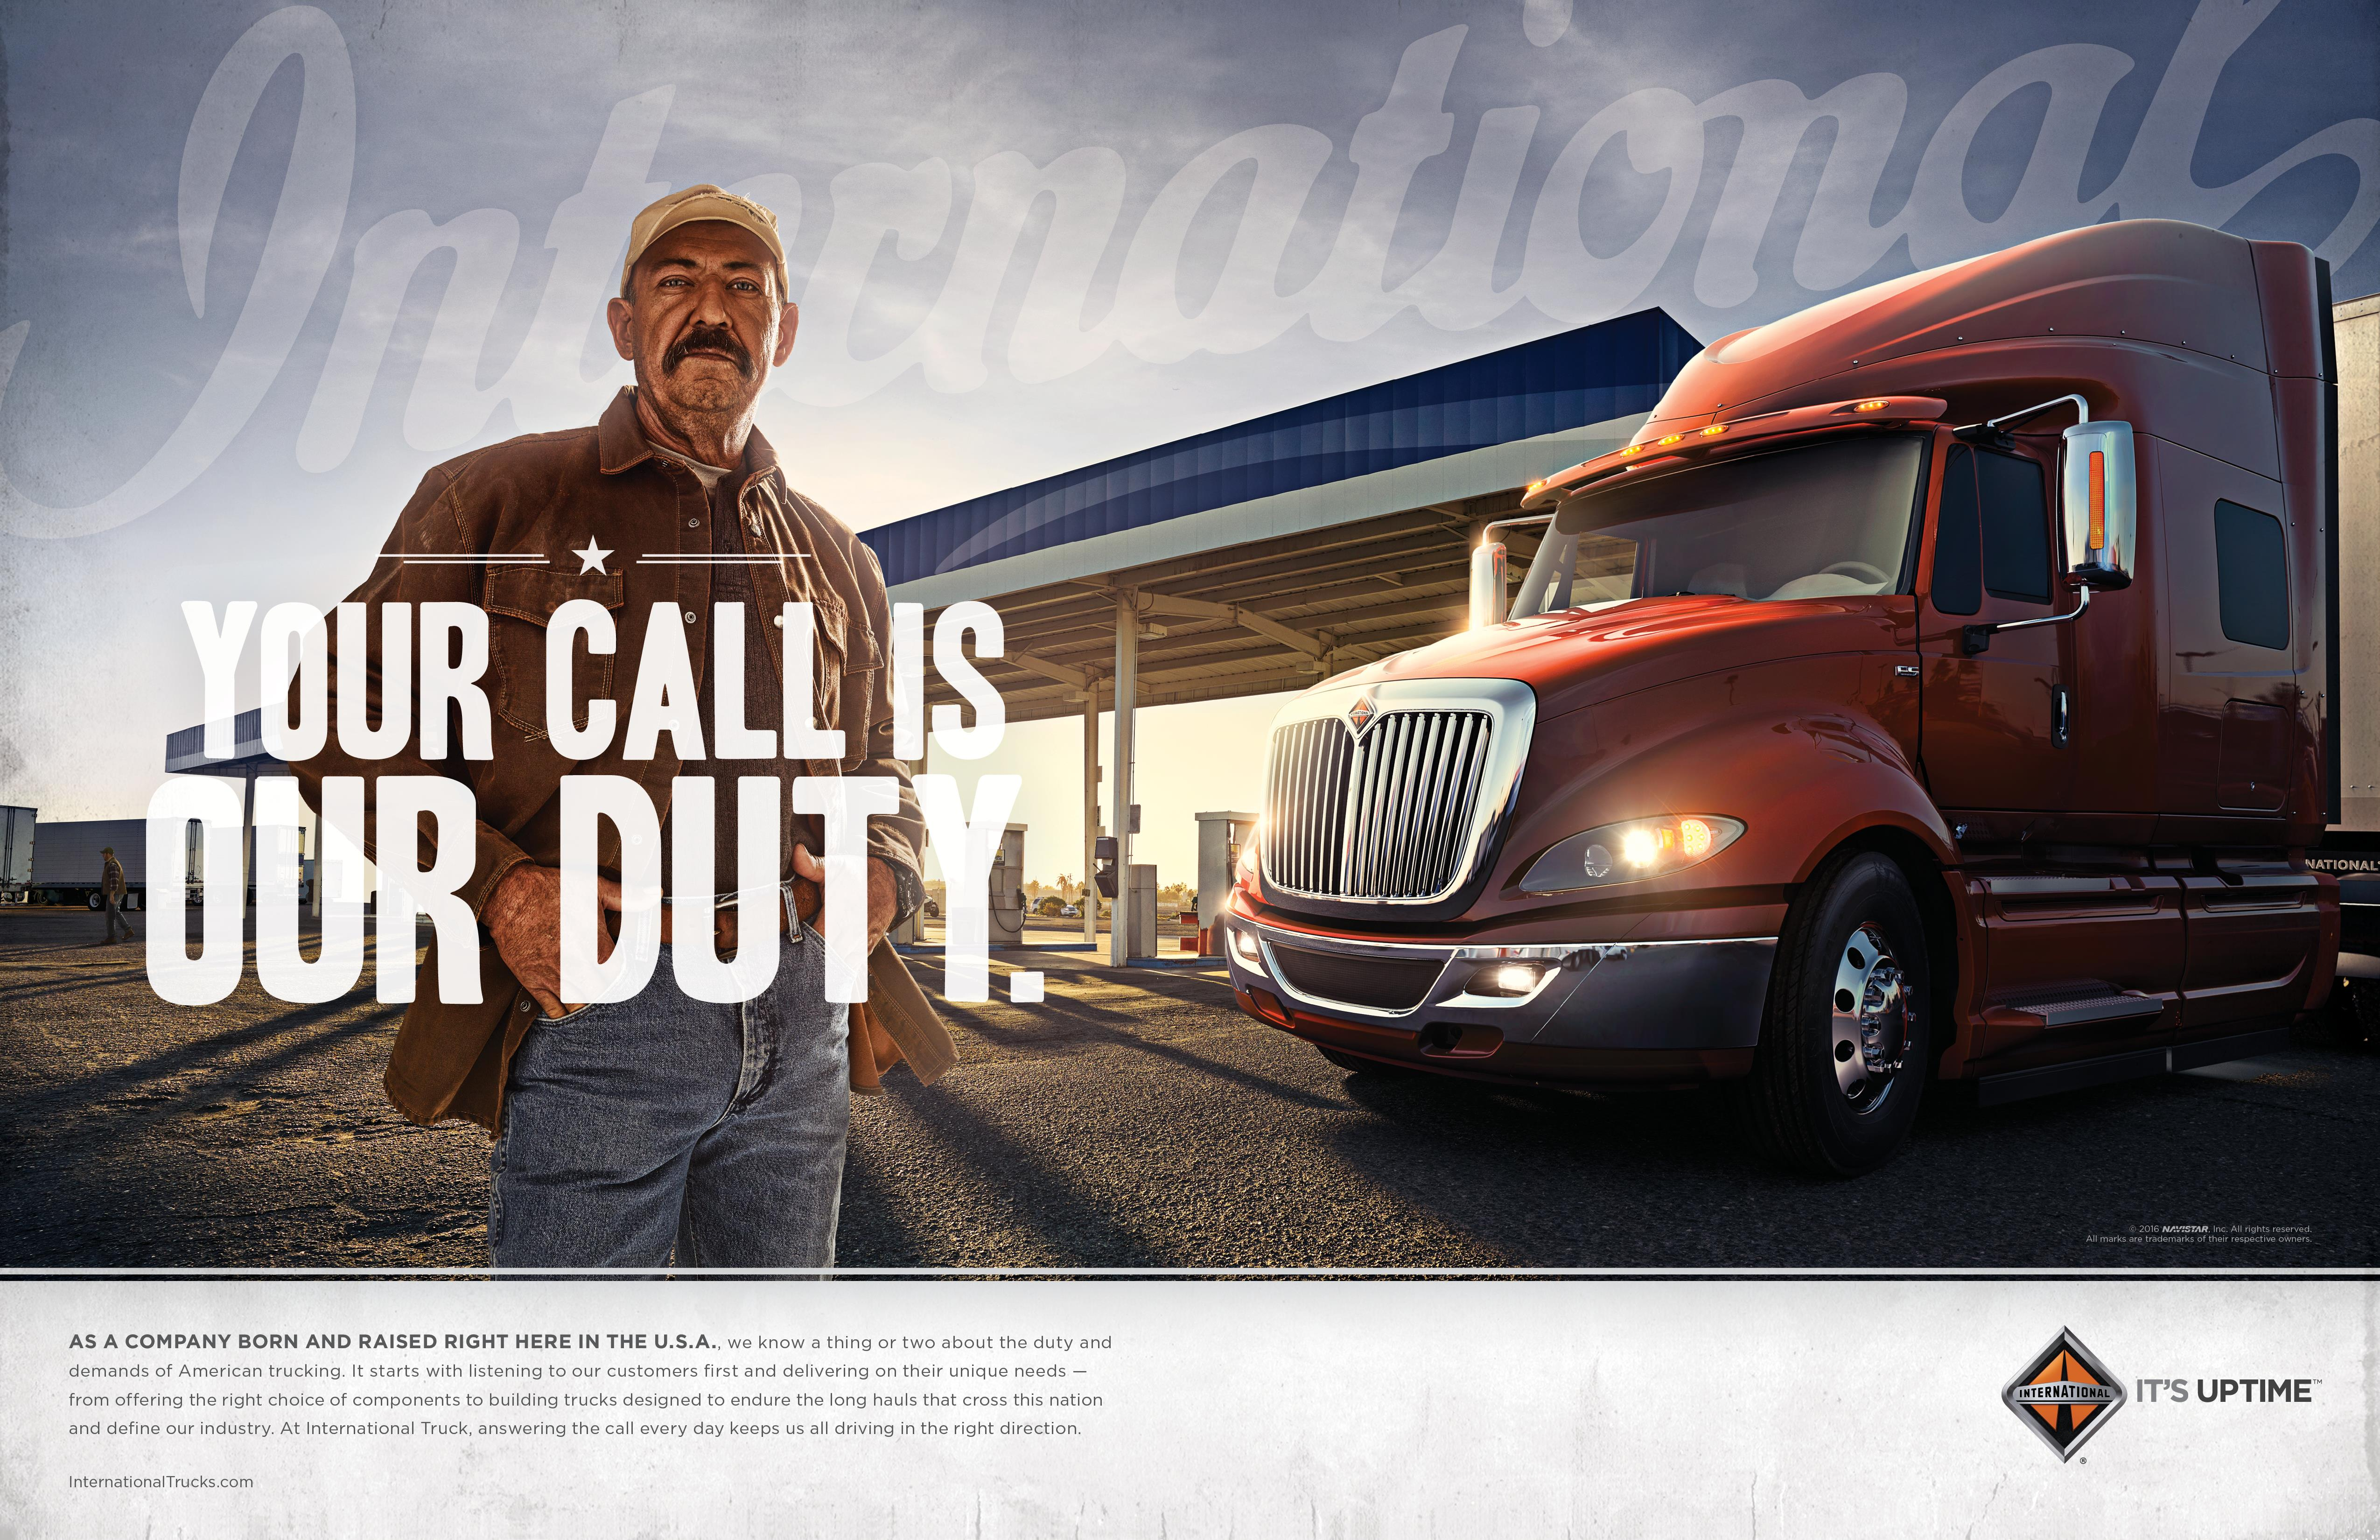 International Trucks: Integration By the People for the People